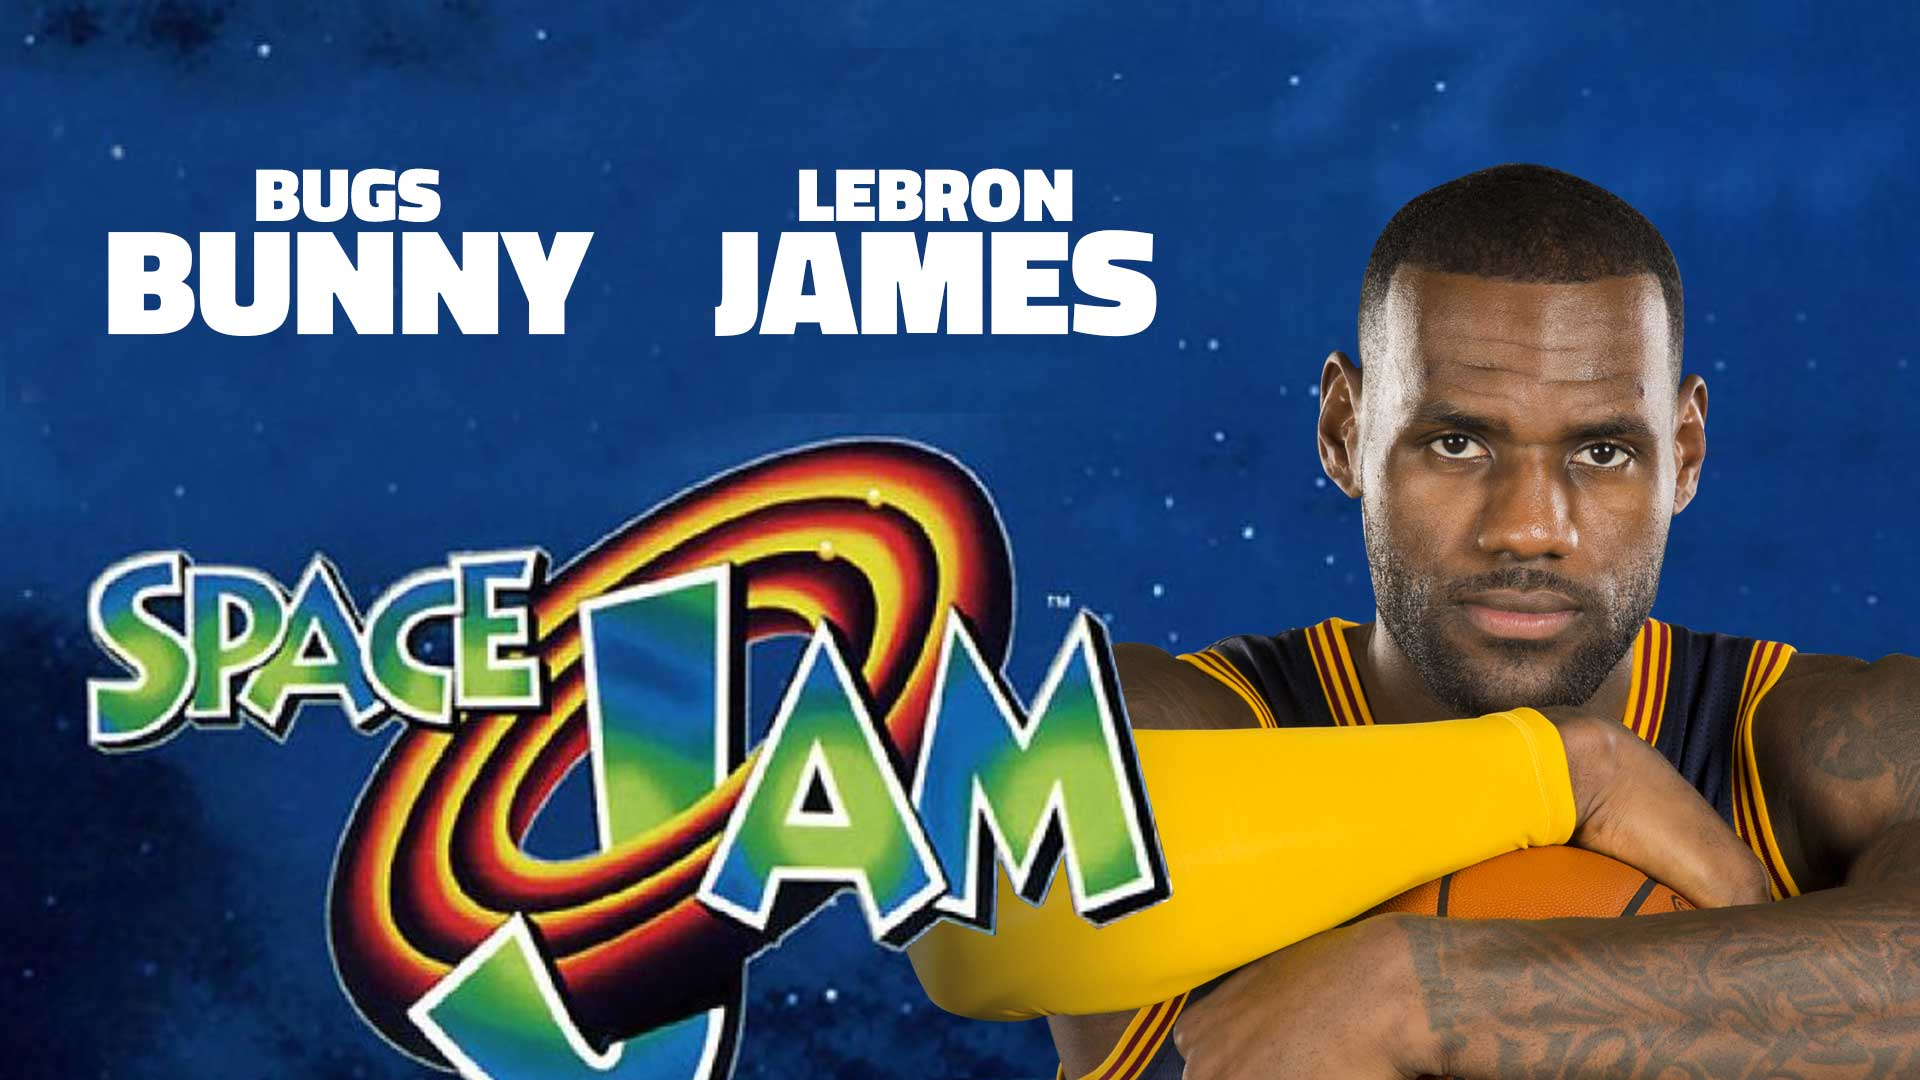 LeBron James teases 'Space Jam: A New Legacy' with hat on IG, and Twitter goes nuts